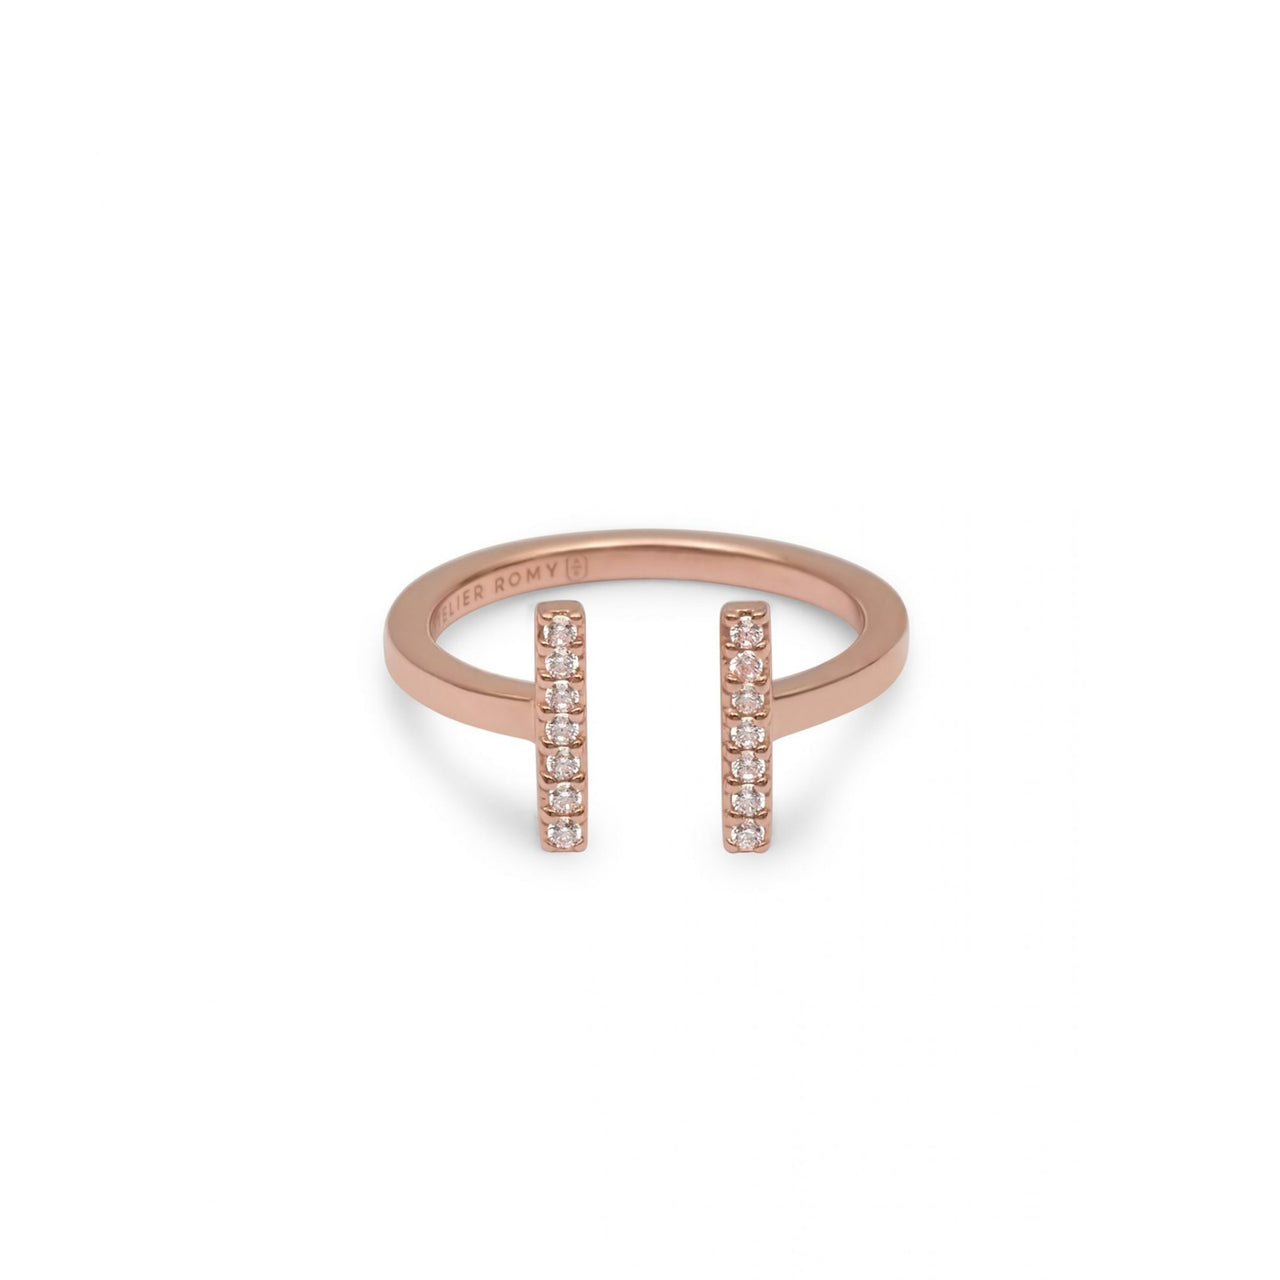 Eternity Line Ring Rose Gold with White Pave